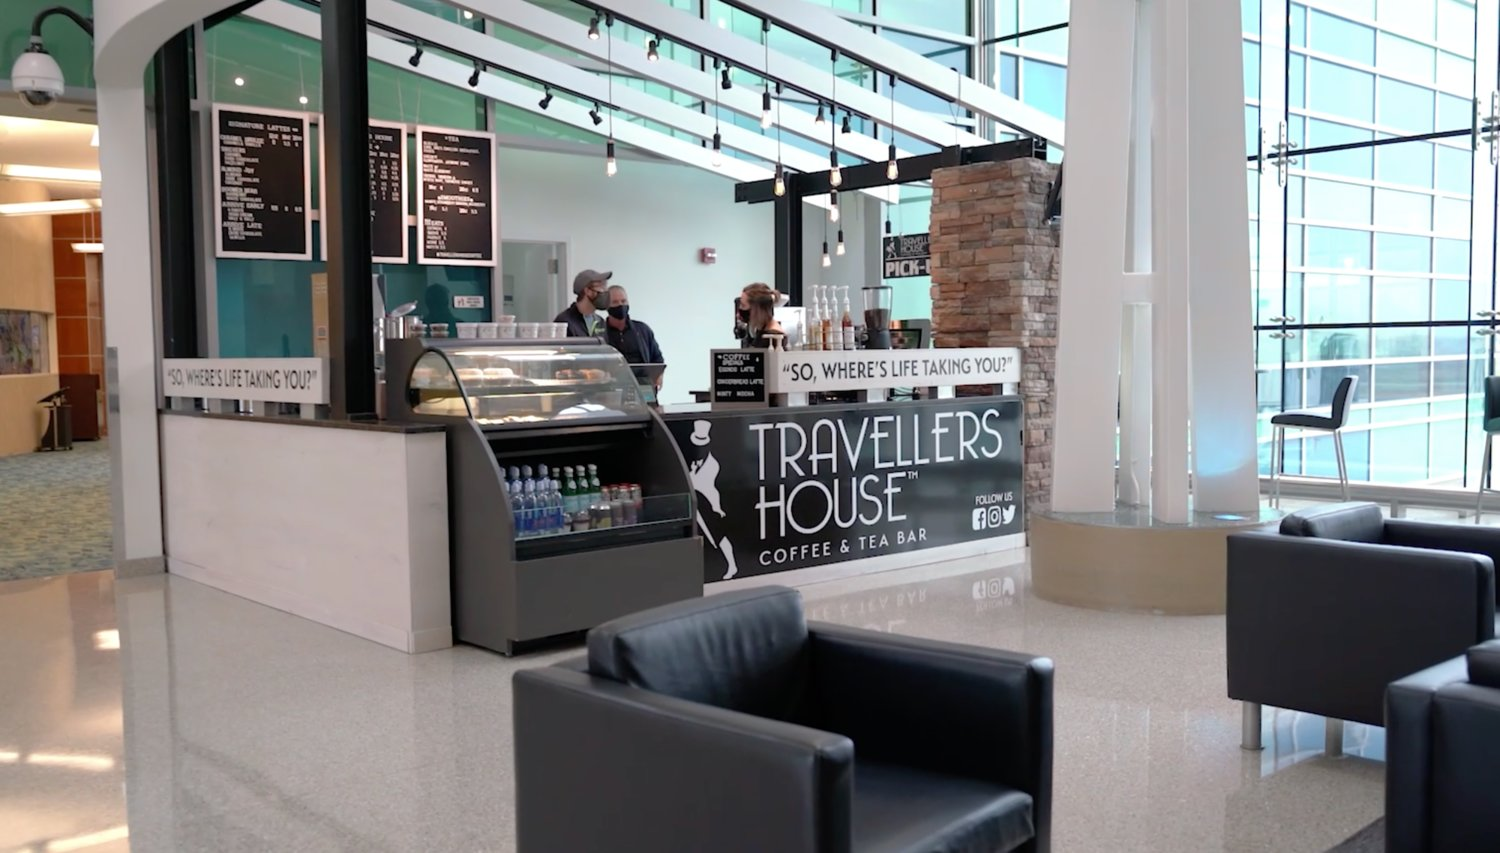 Travellers House is serving up beverages just past the Transportation Security Administration checkpoint.